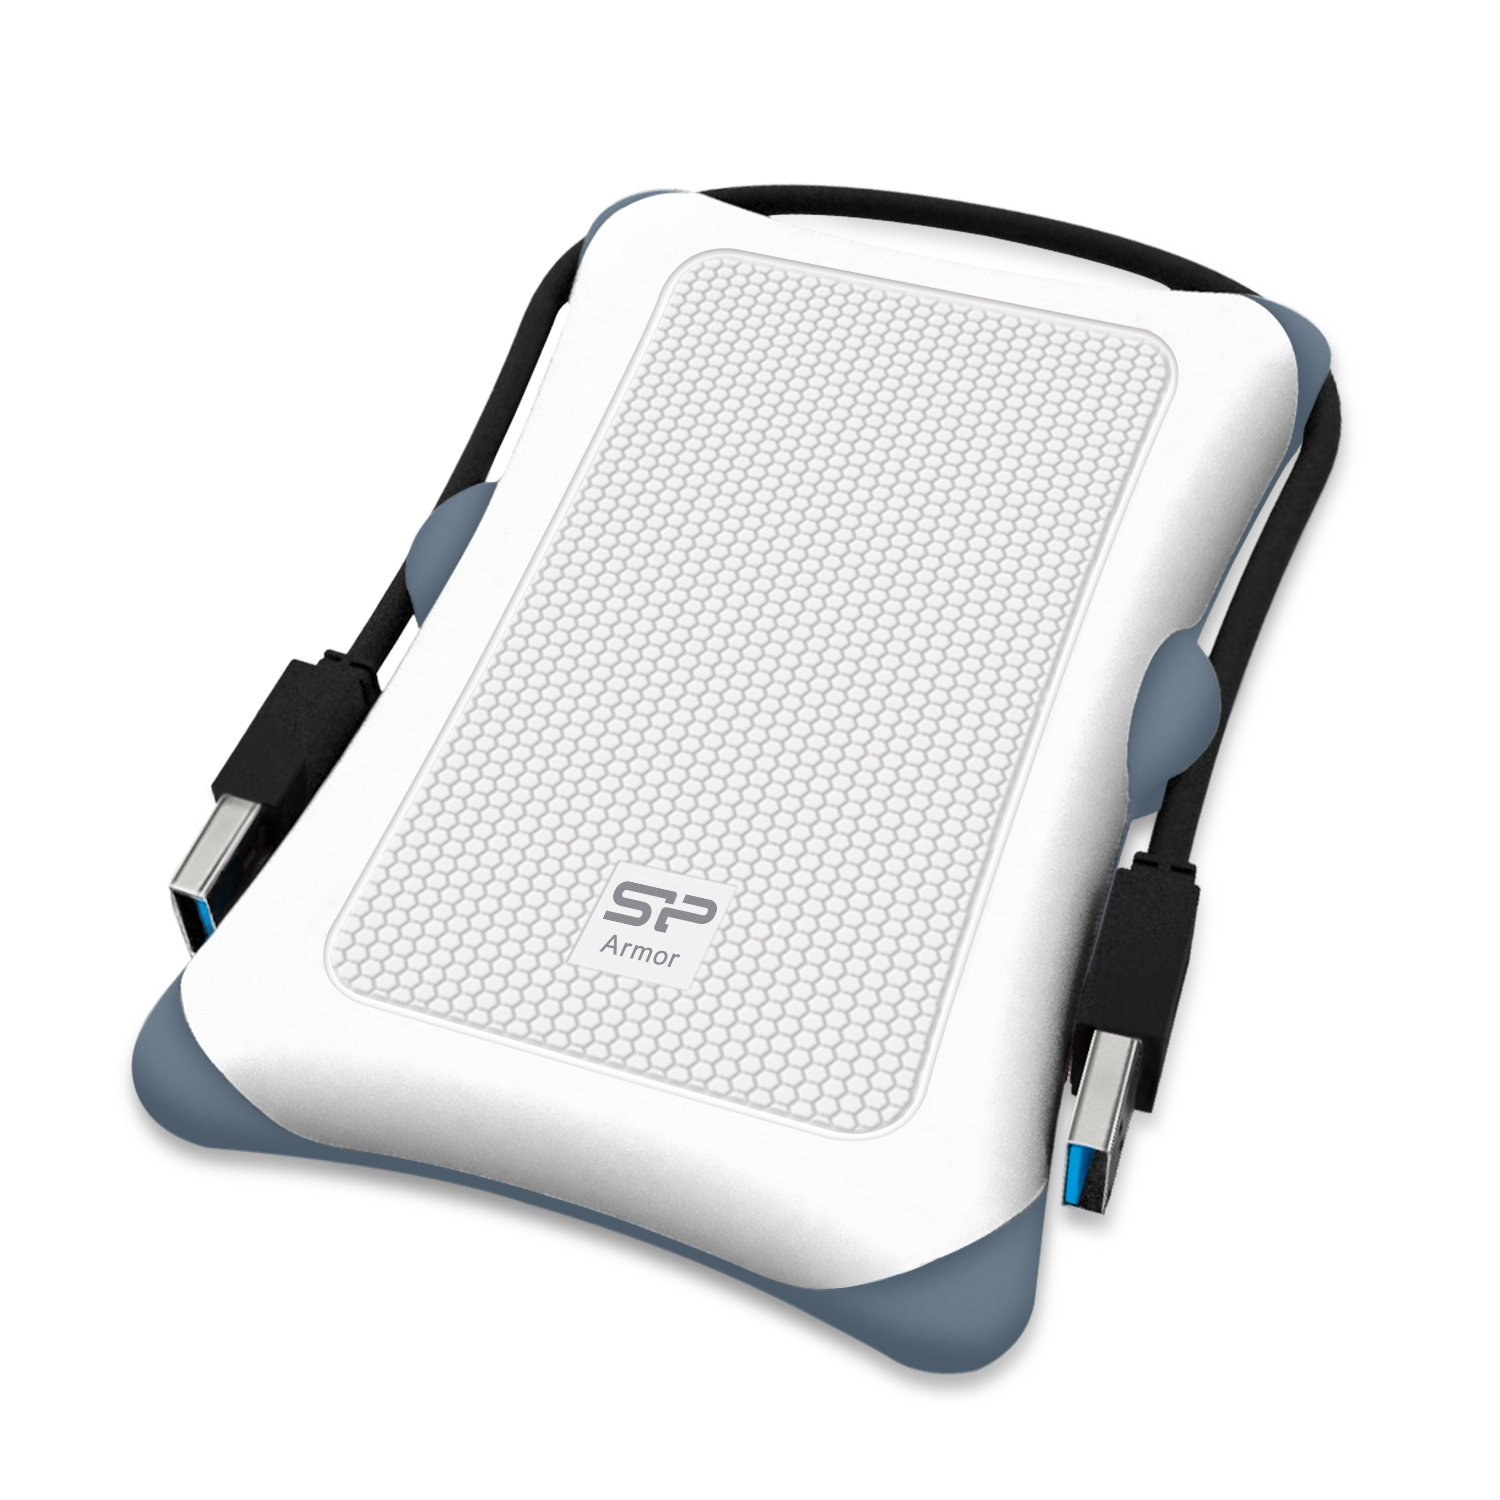 Silicon Power 1TB Rugged Armor A30 Shockproof USB 3.0 by Silicon Power (Image #3)